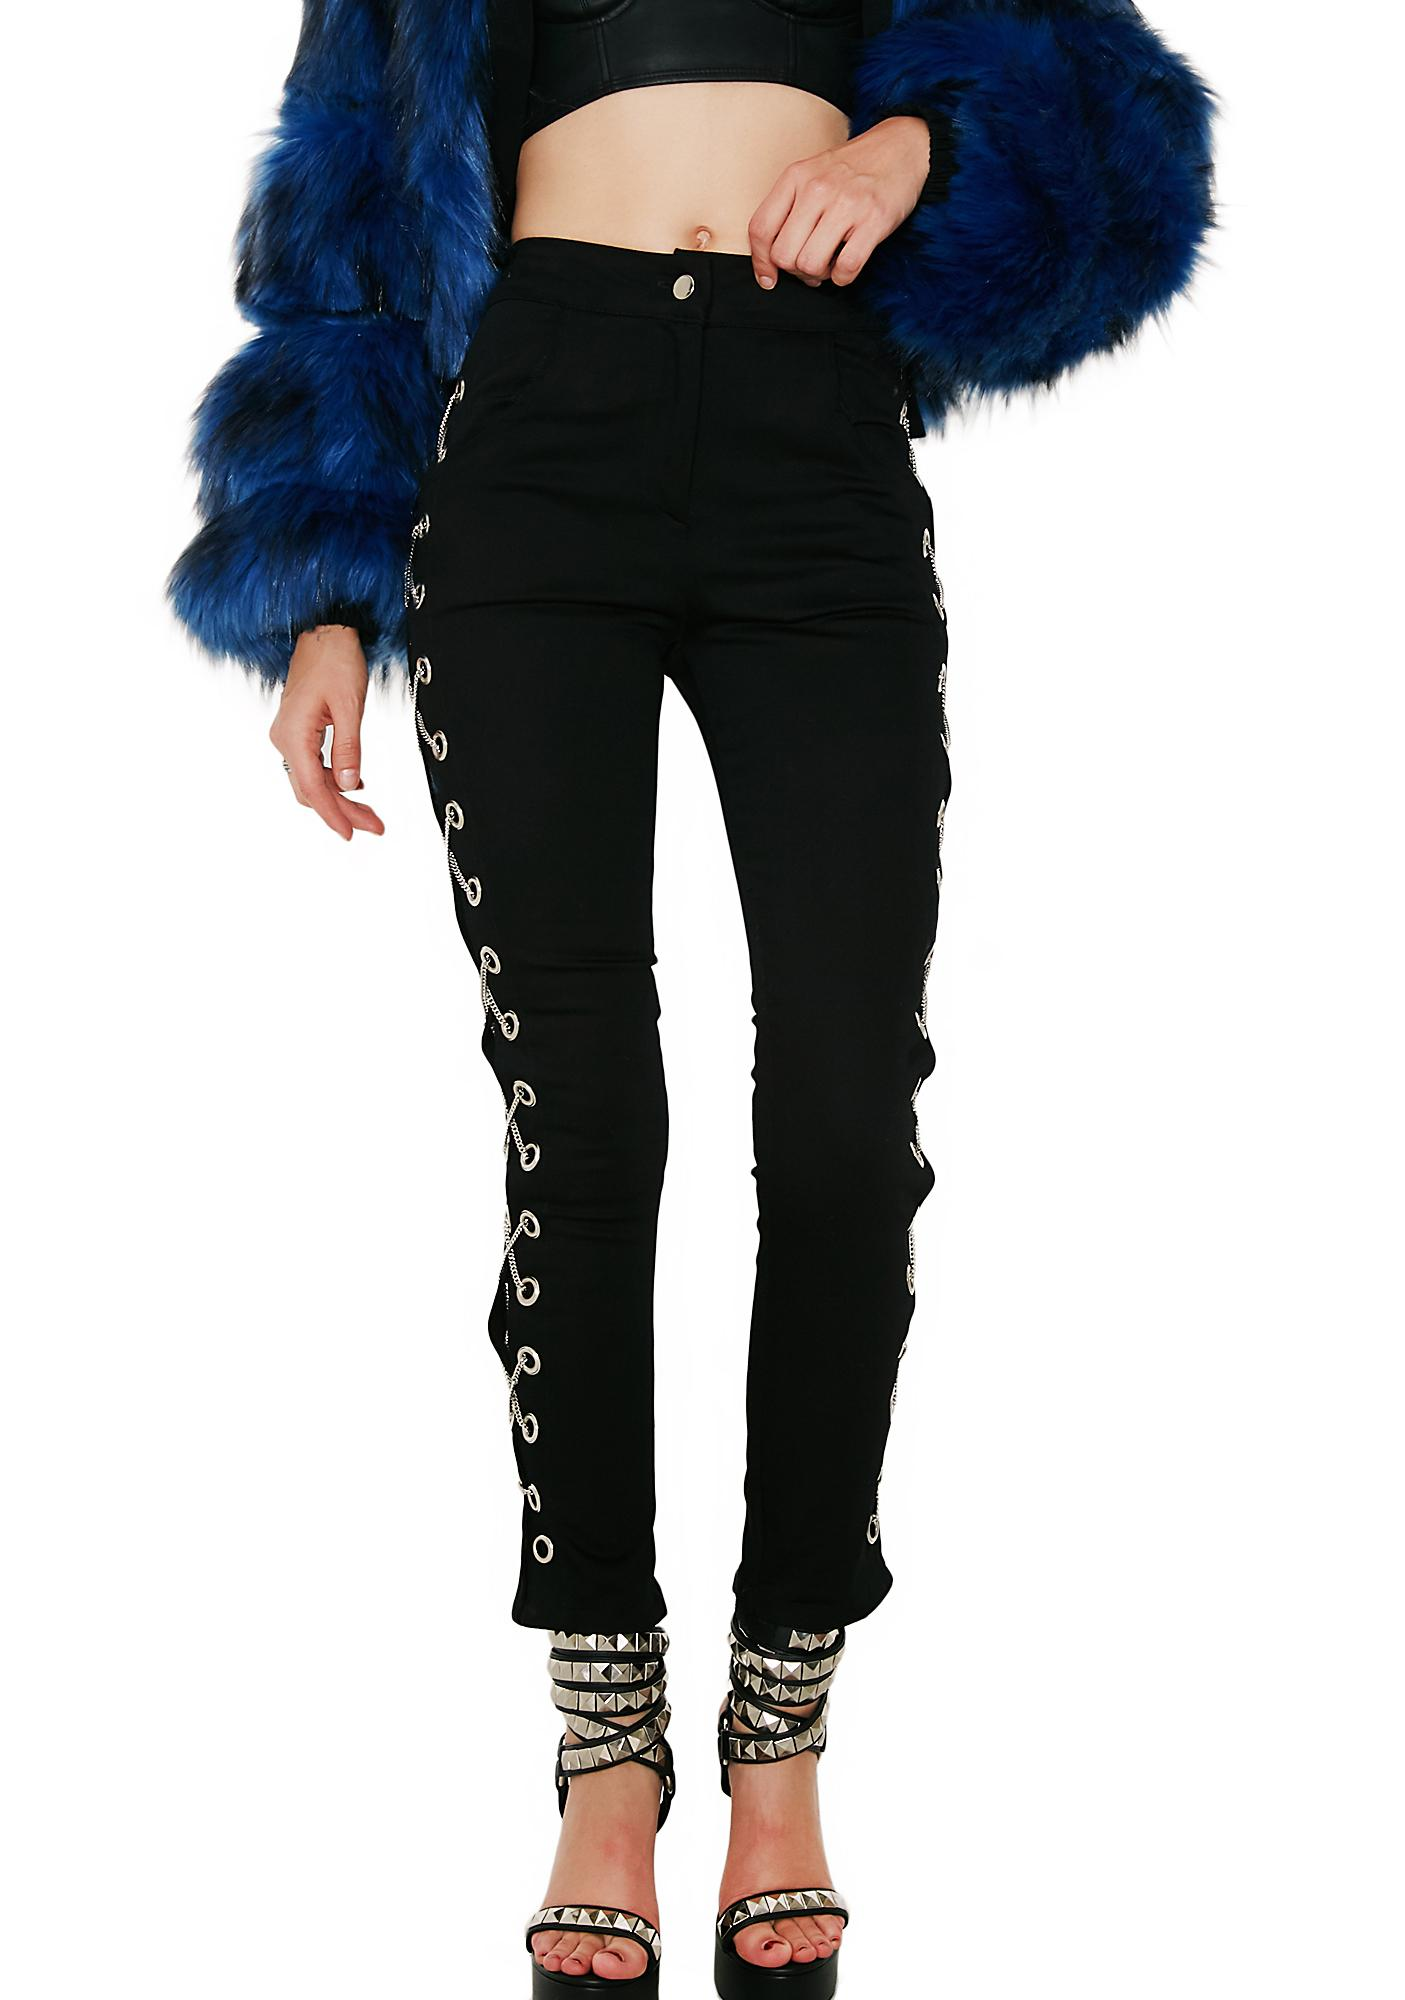 Hardware LDN Social Distortion Chained Trousers